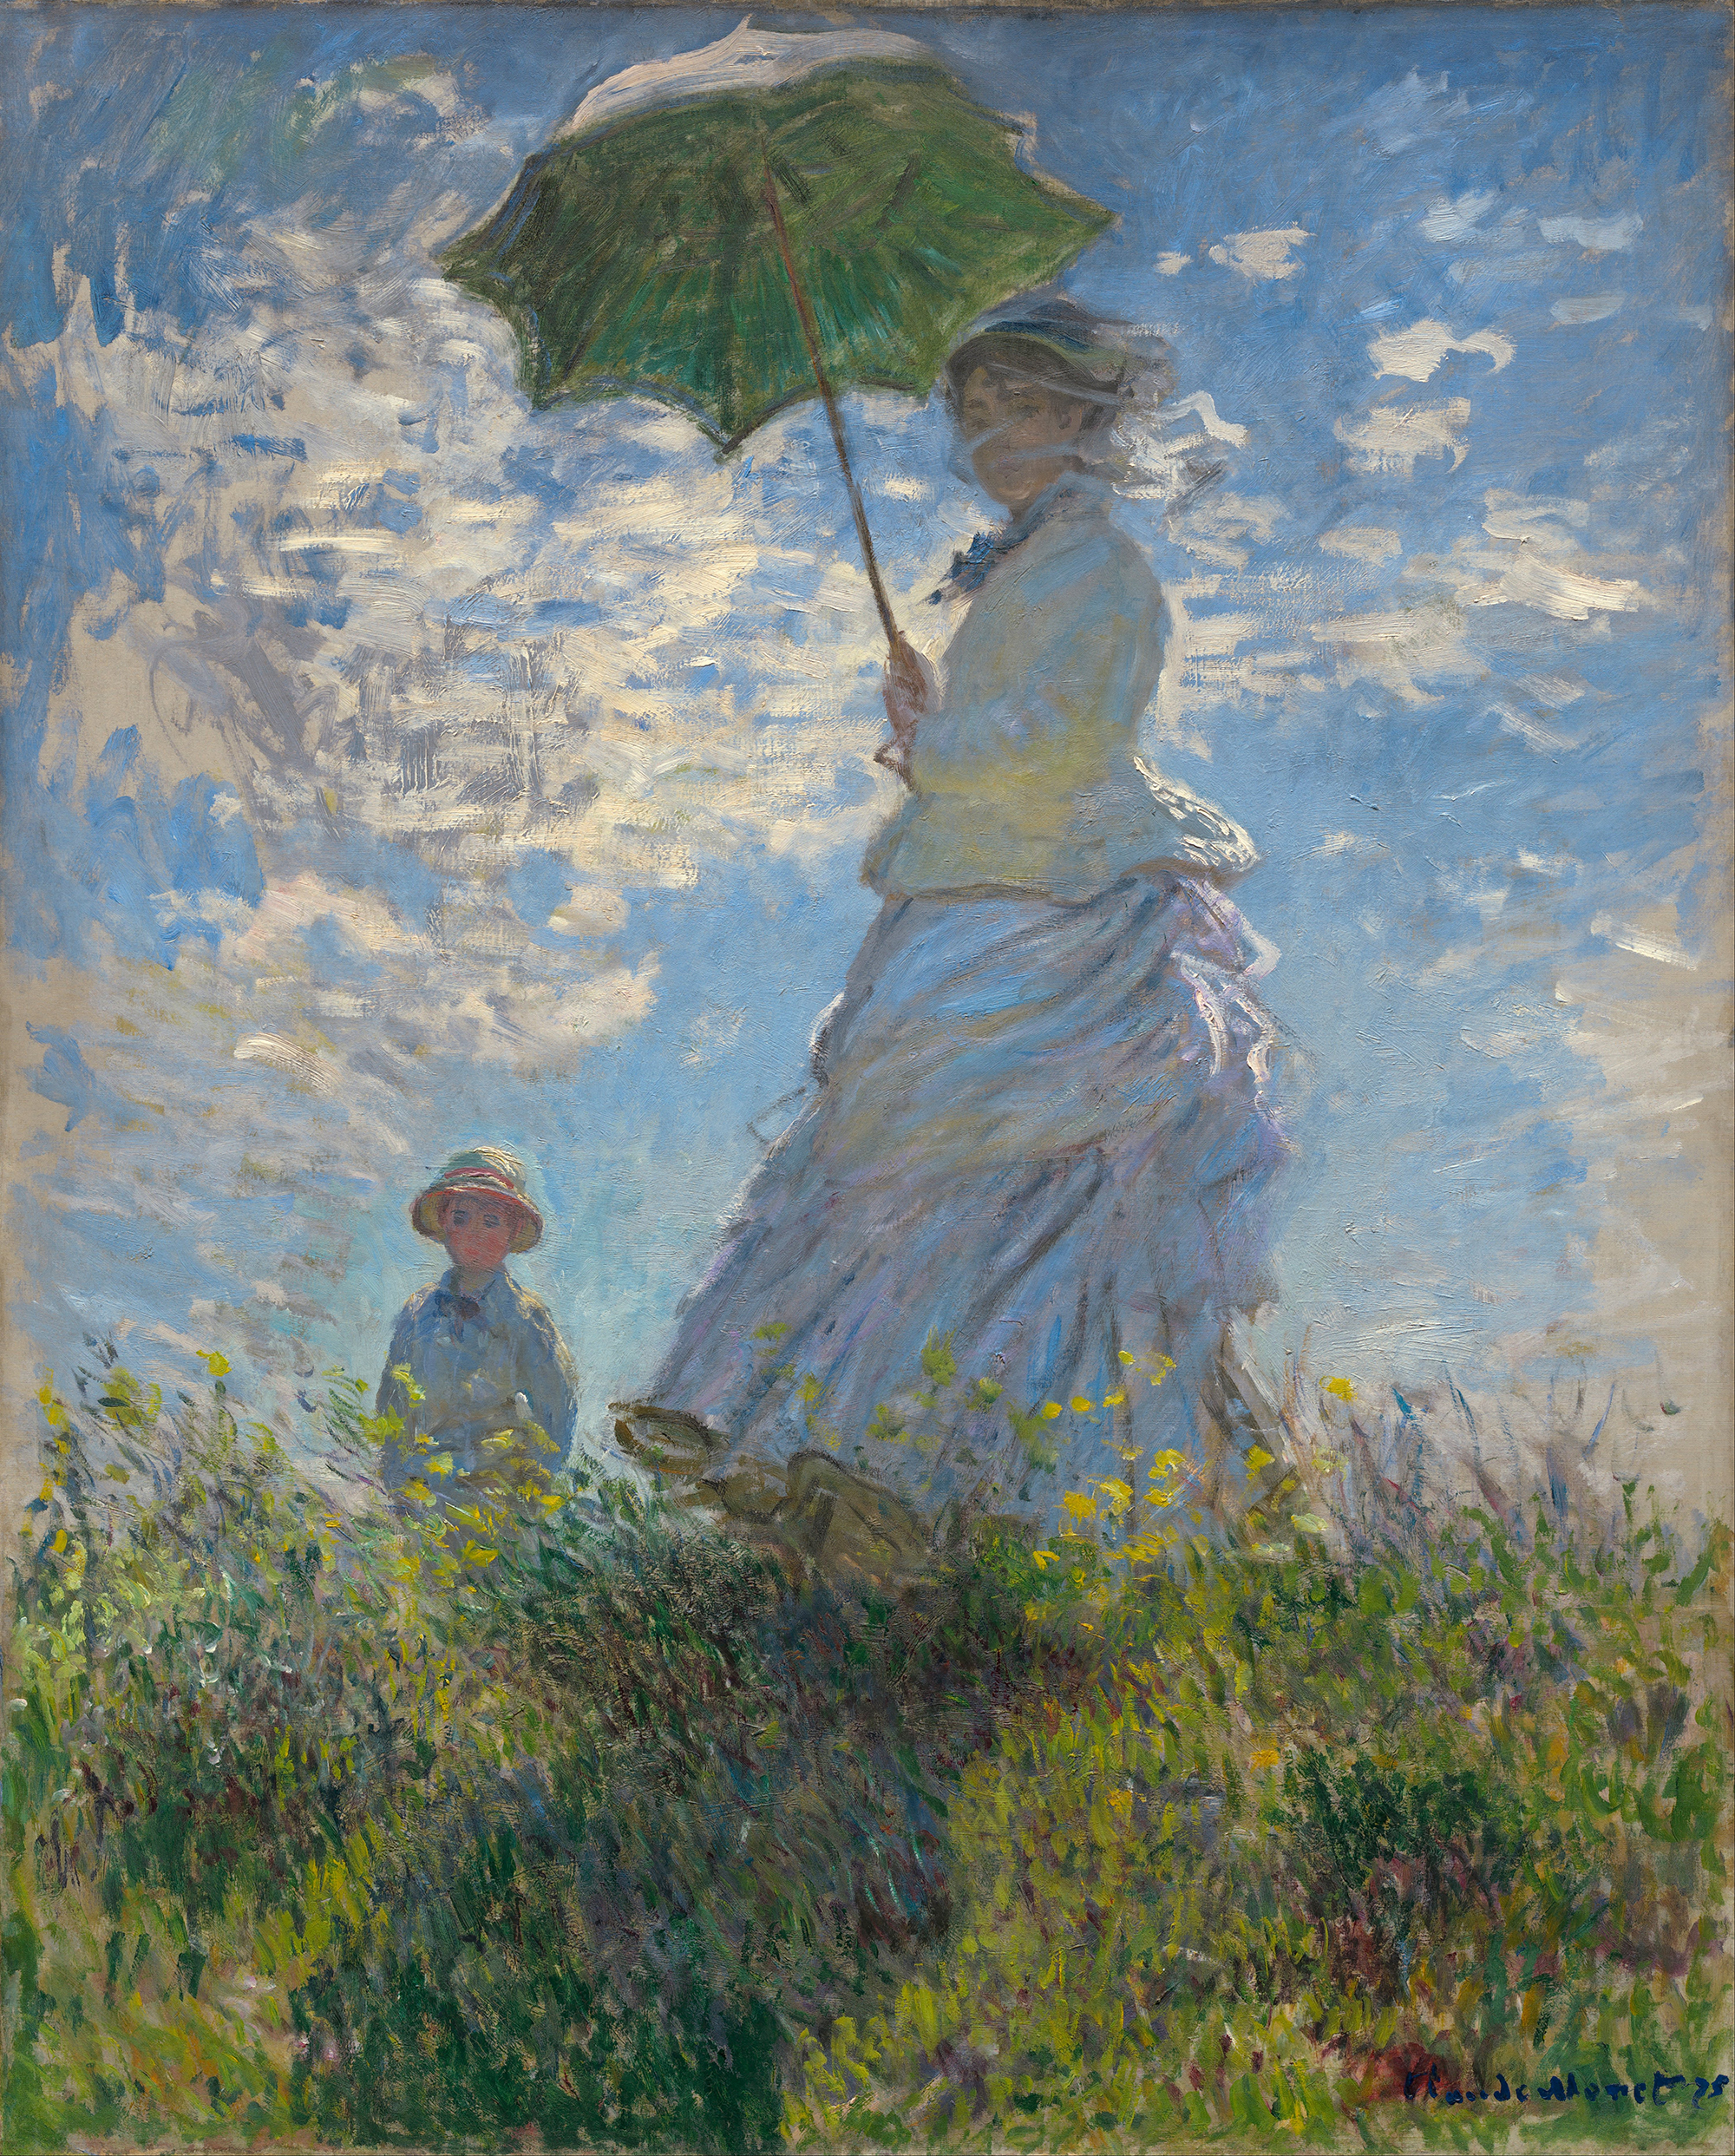 Claude_Monet_-_Woman_with_a_Parasol_-_Madame_Monet_and_Her_Son_-small